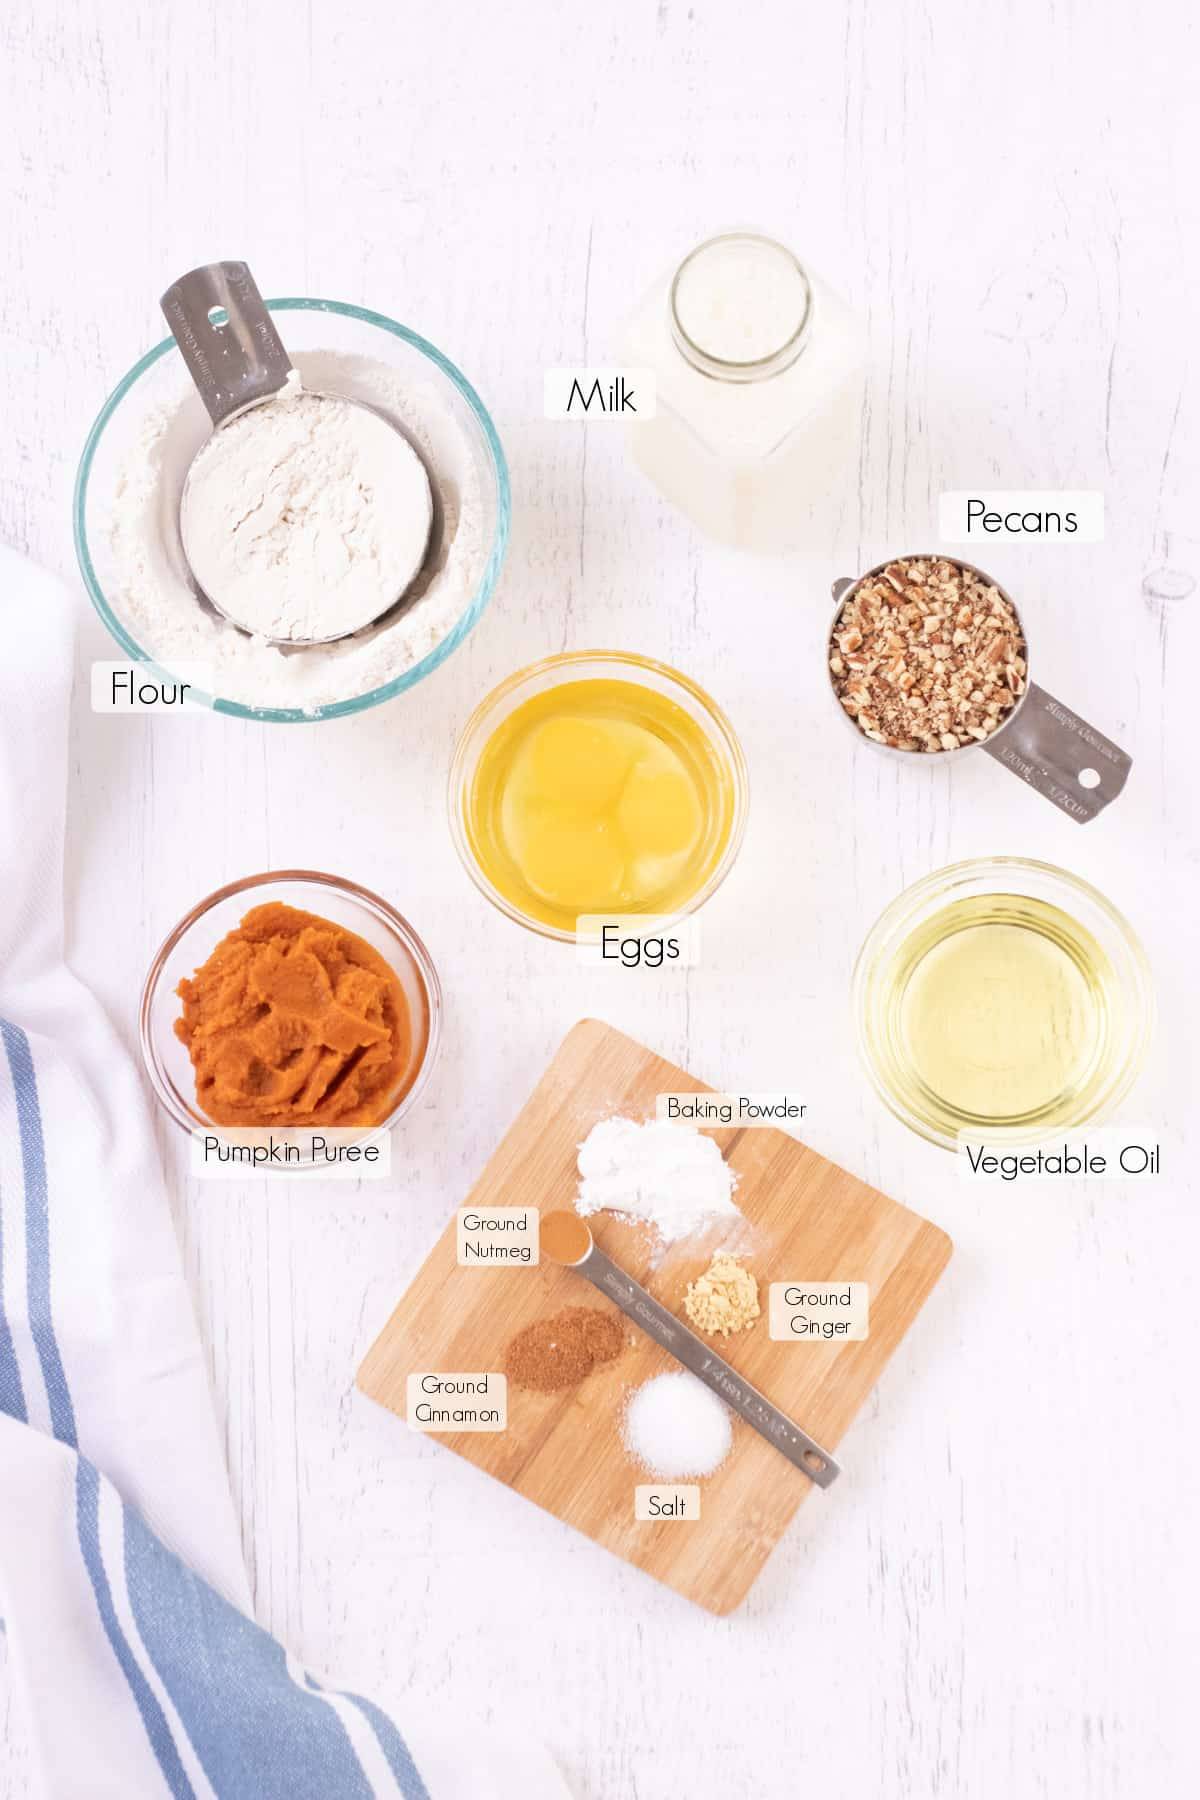 Labeled ingredients to make Healthy Pumpkin Waffles.